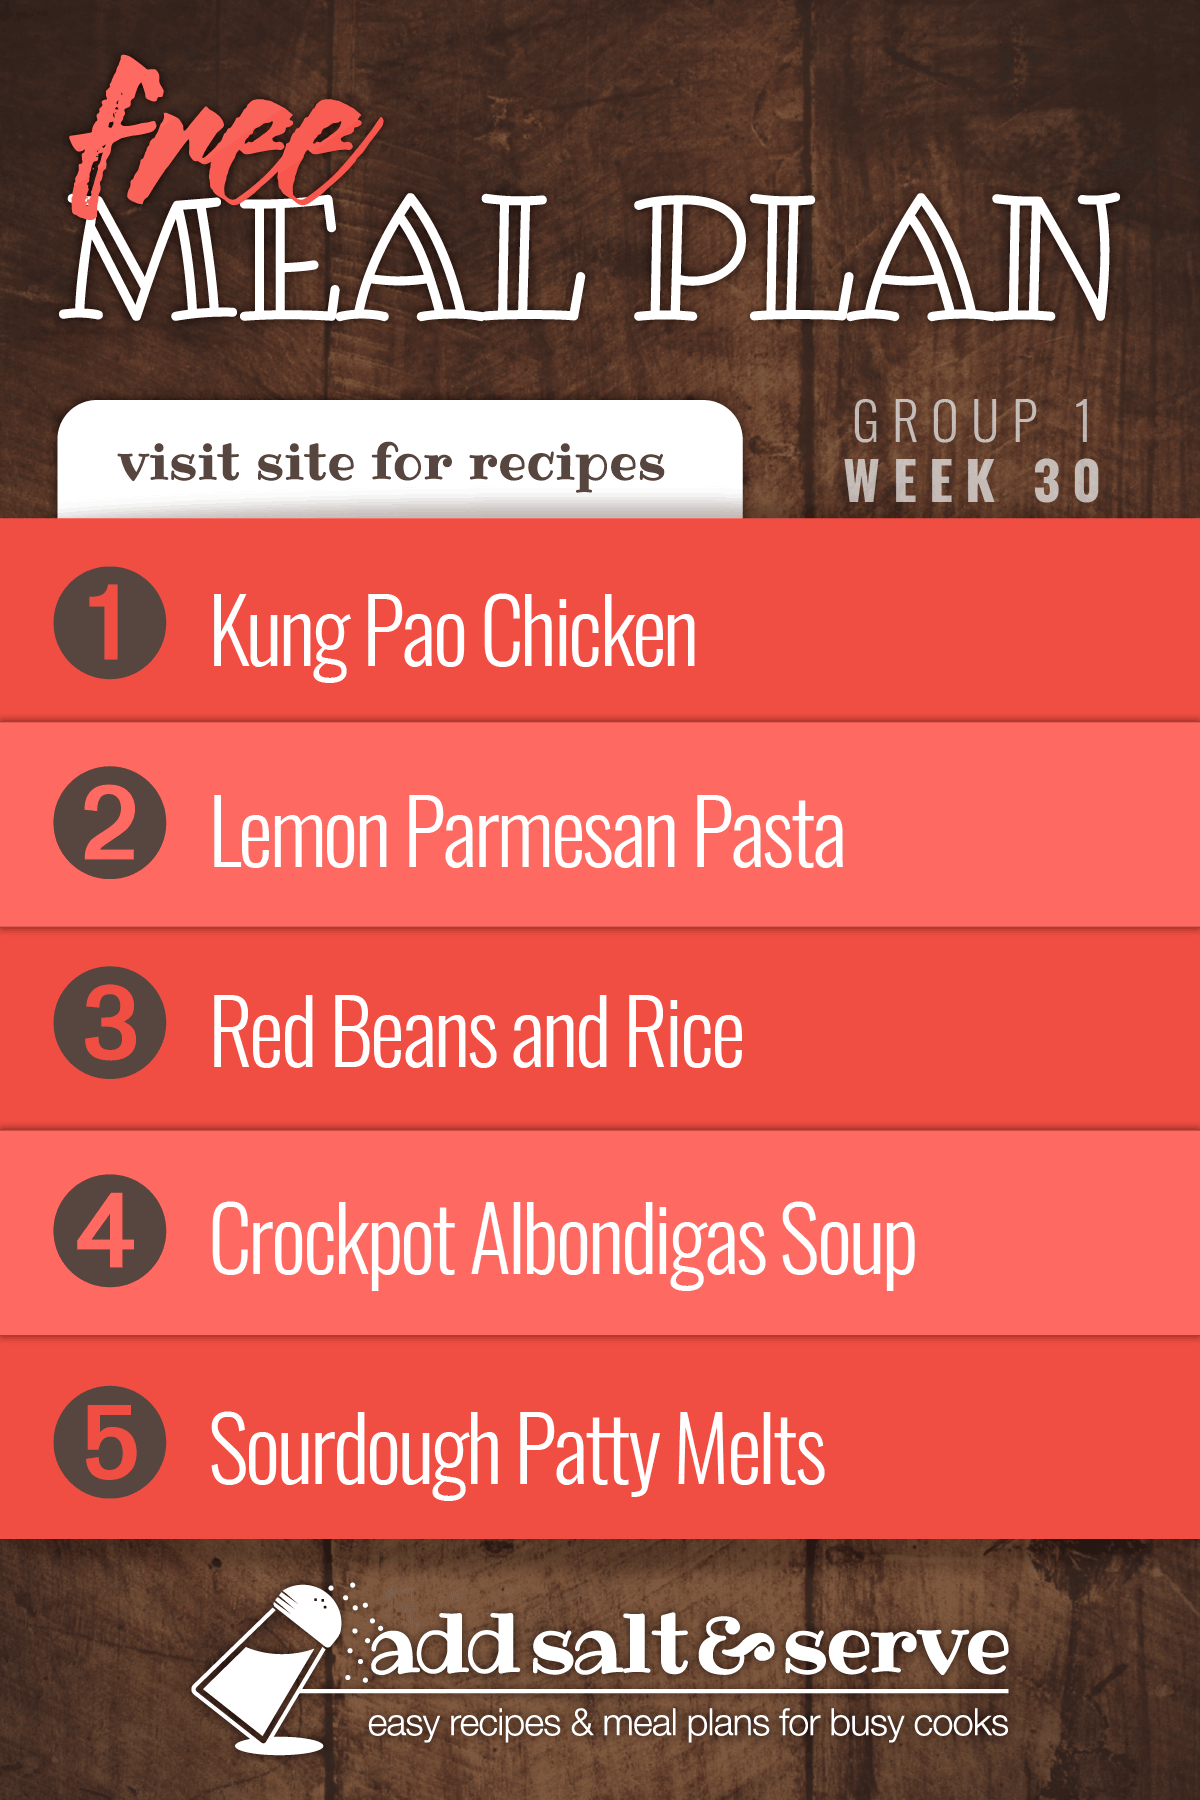 Free Meal Plan for Week 30 (Group 1): Kung Pao Chicken, Pasta with Parmesan and Lemon Sauce, Red Beans and Rice, Crockpot Albondigas Soup (Mexican Meatball Soup), Sourdough Patty Melts